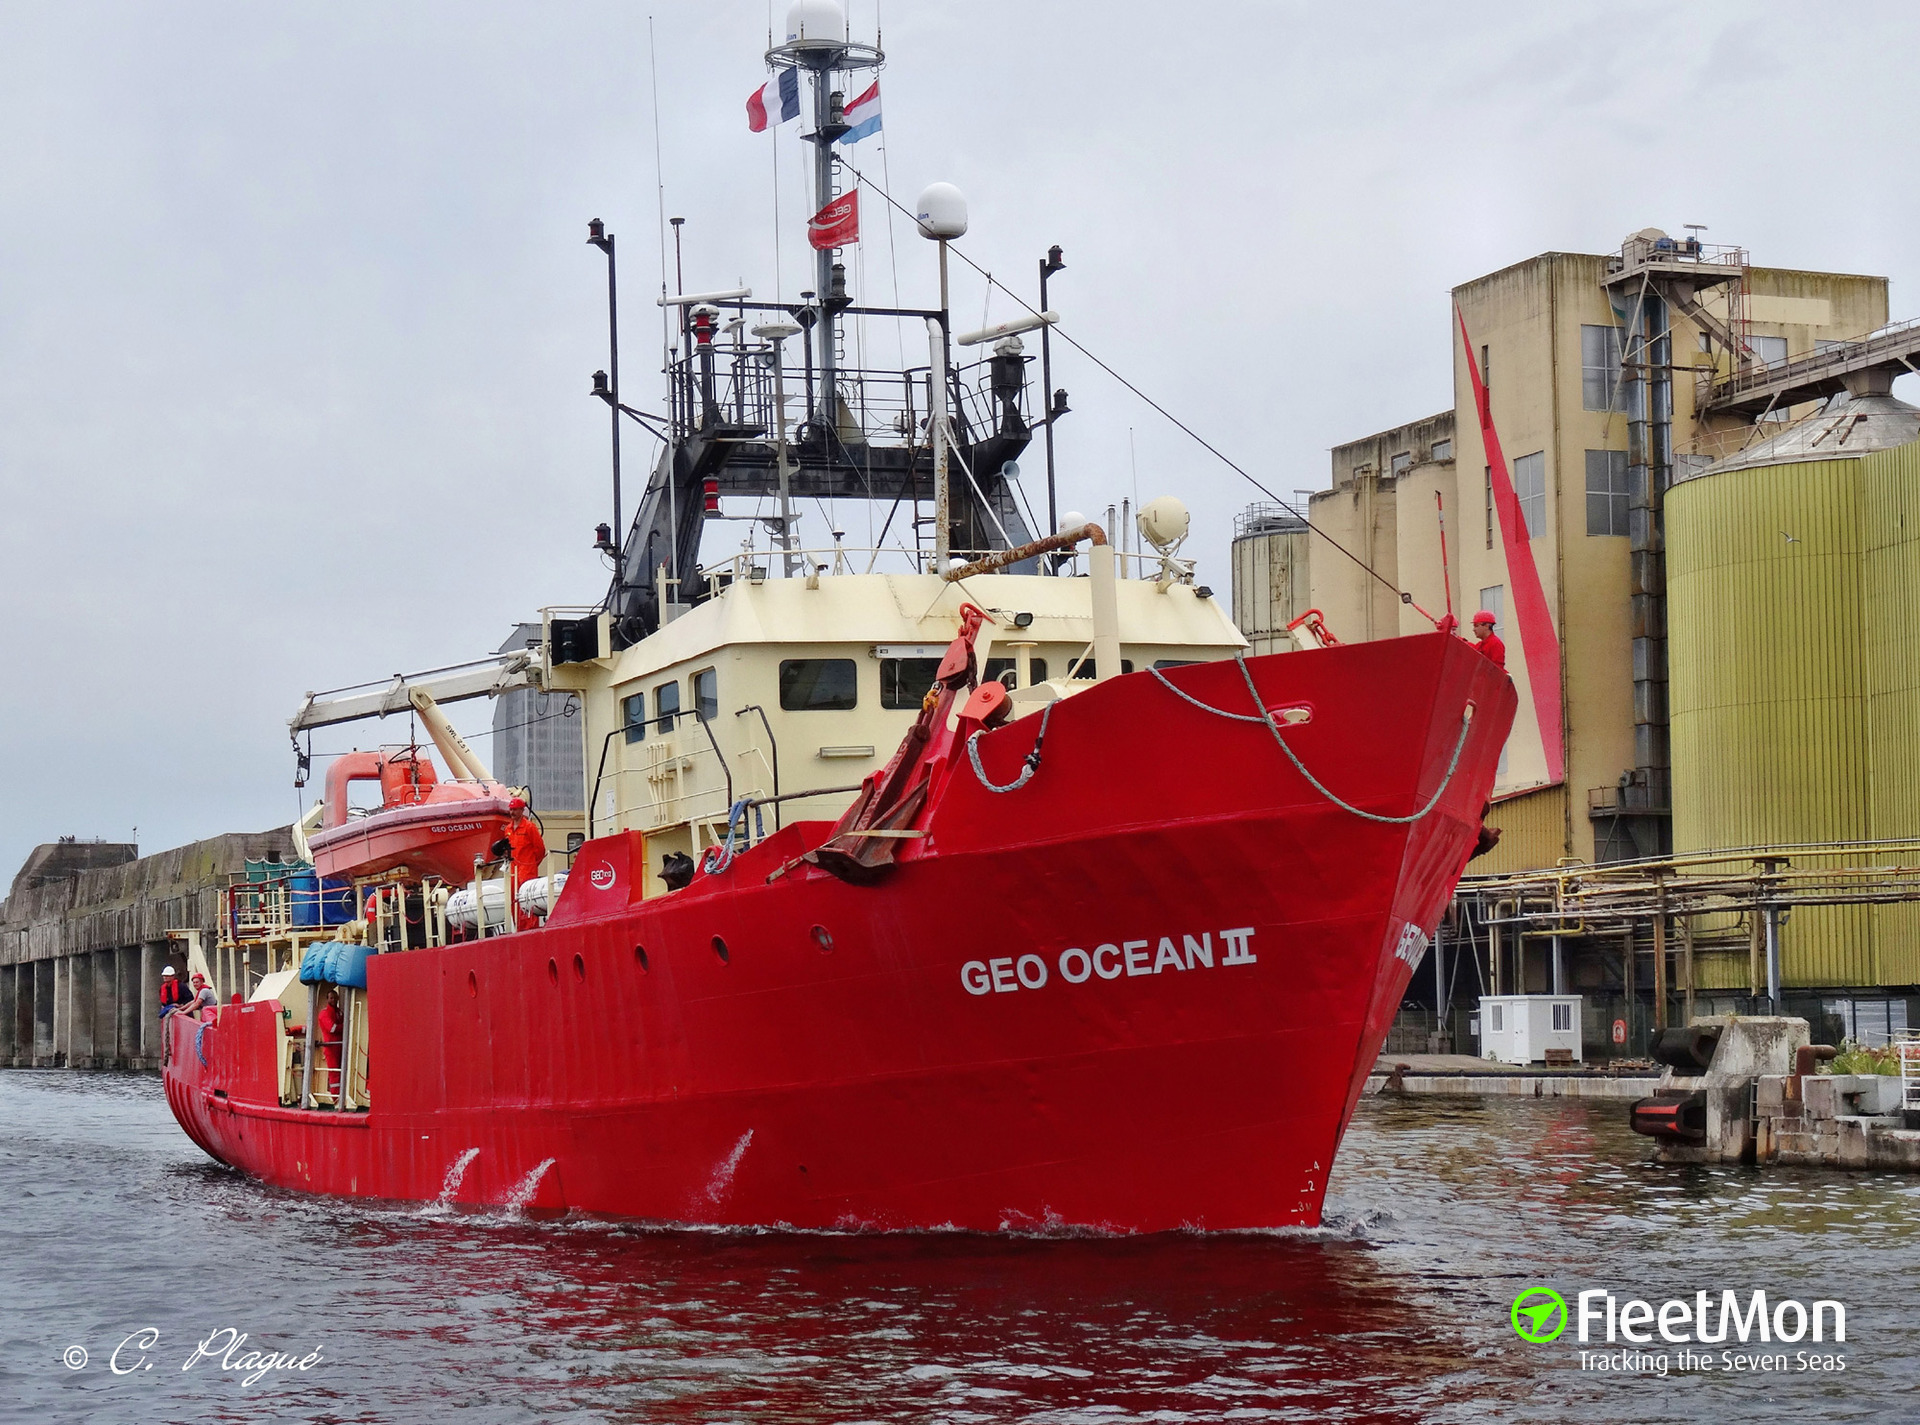 Support vessel OMS Pollux holed after allision with wind turbine, Irish sea (UPDATE)